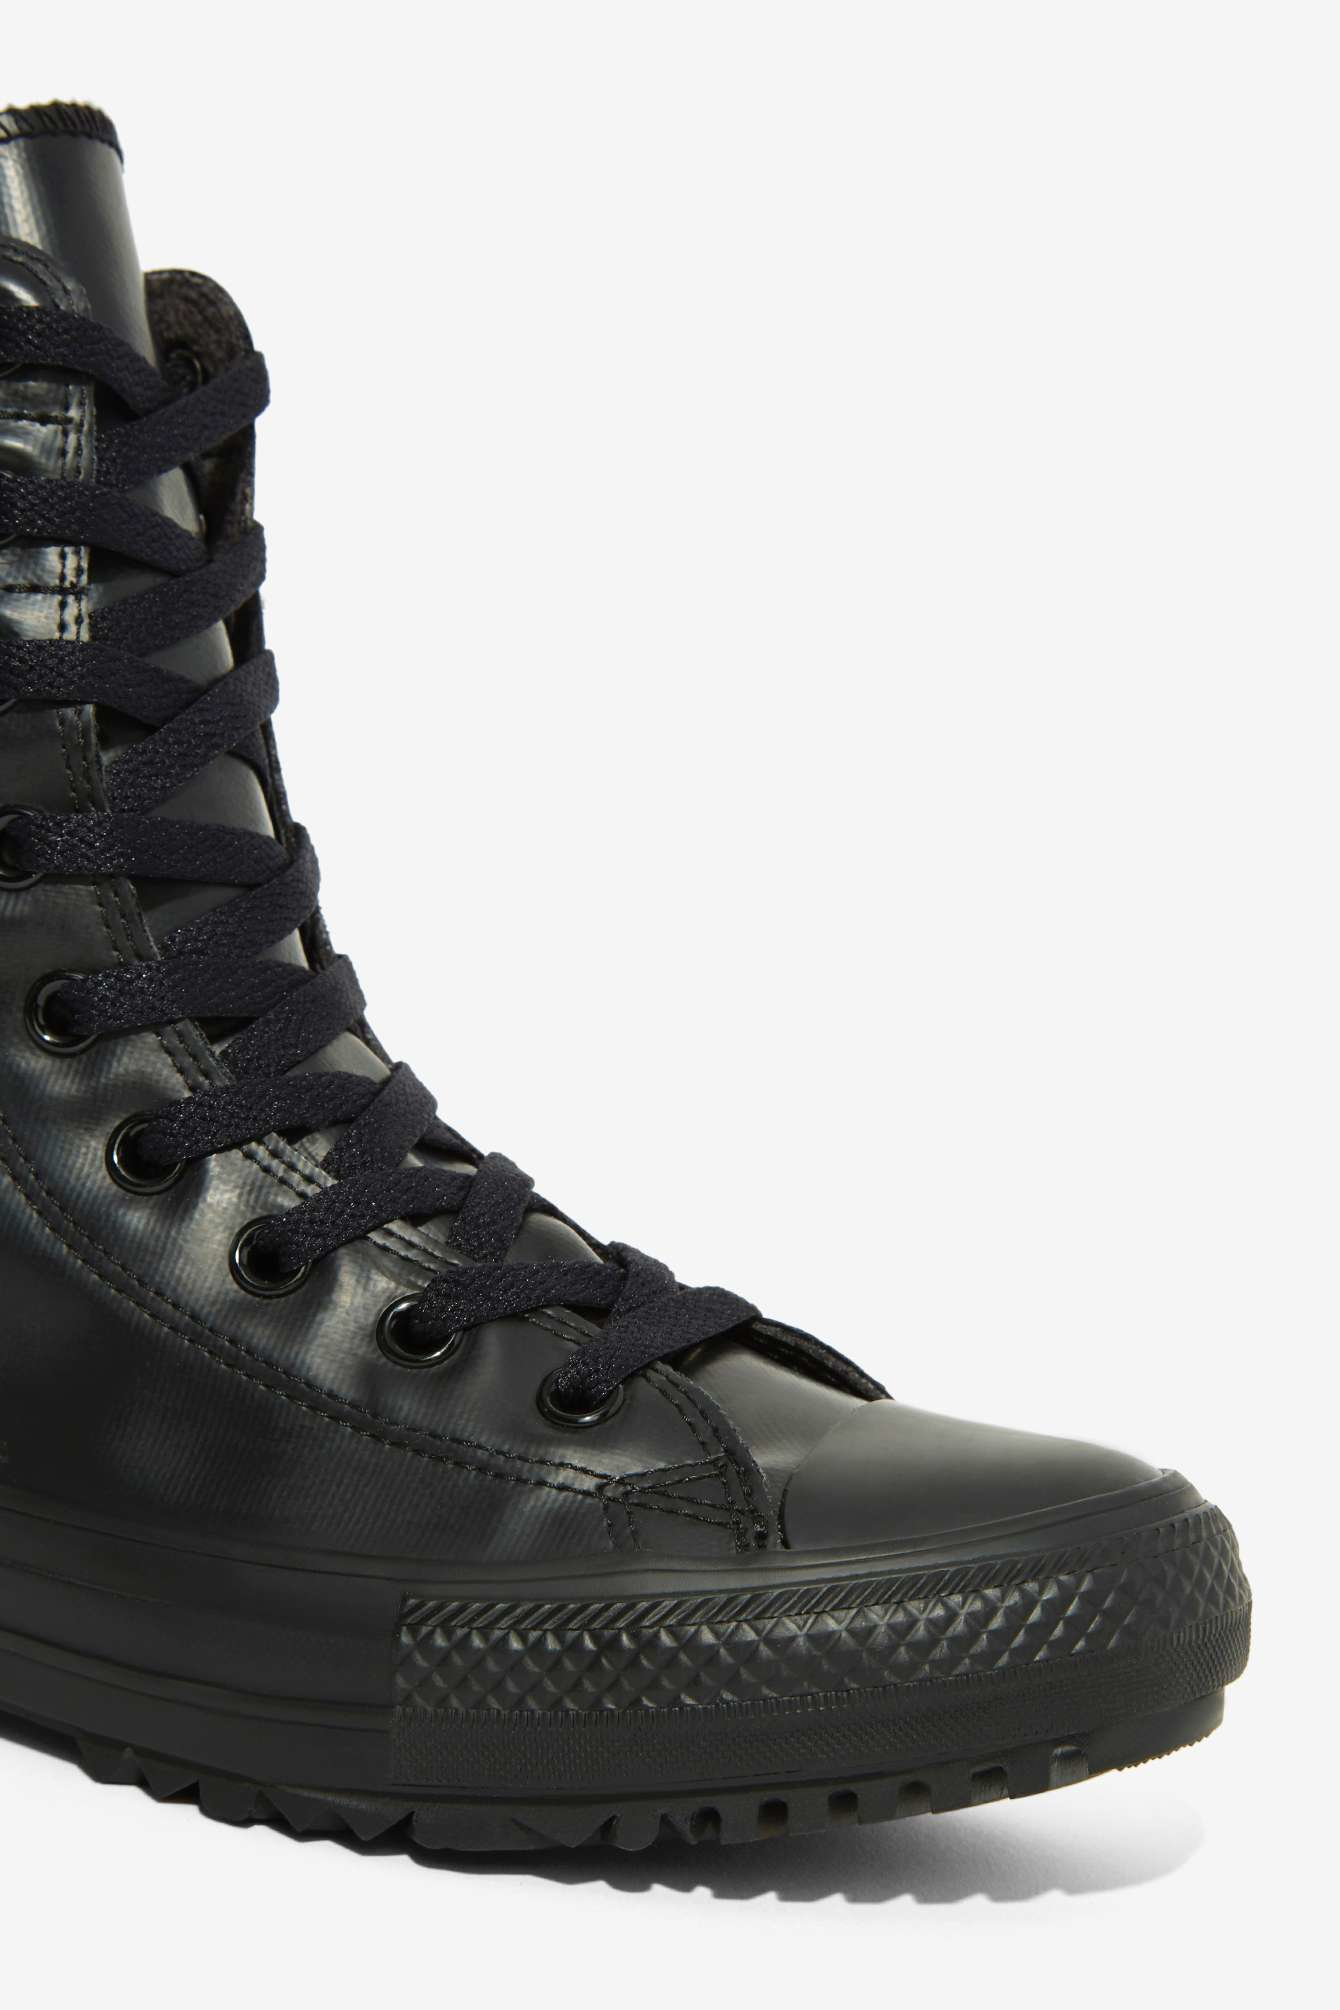 Converse Chuck Taylor Hi Rise Suede Boot in Black